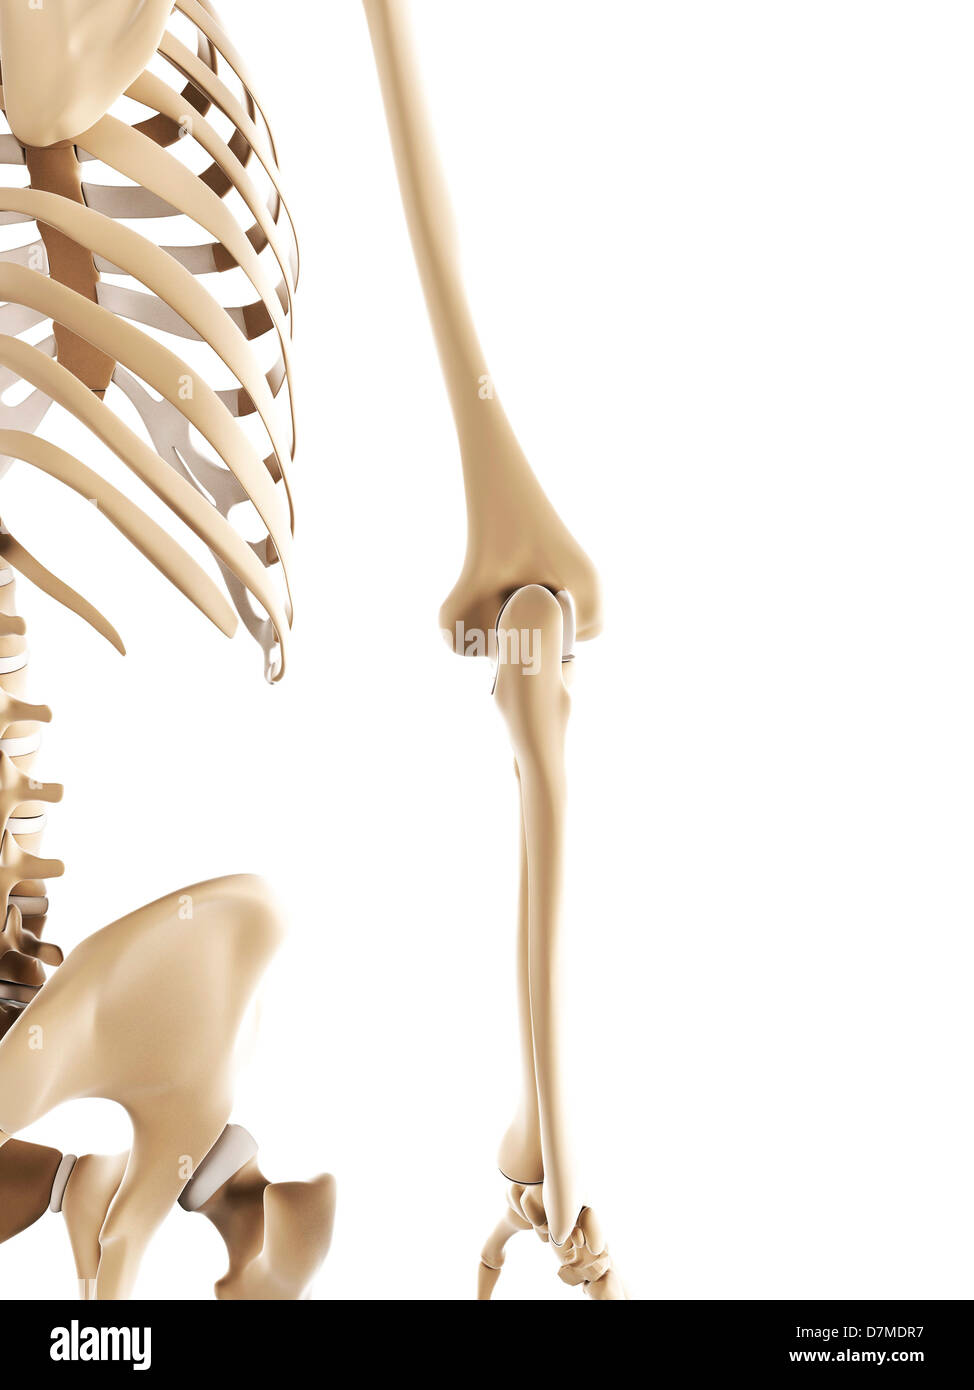 Elbow Bones Stock Photos & Elbow Bones Stock Images - Alamy